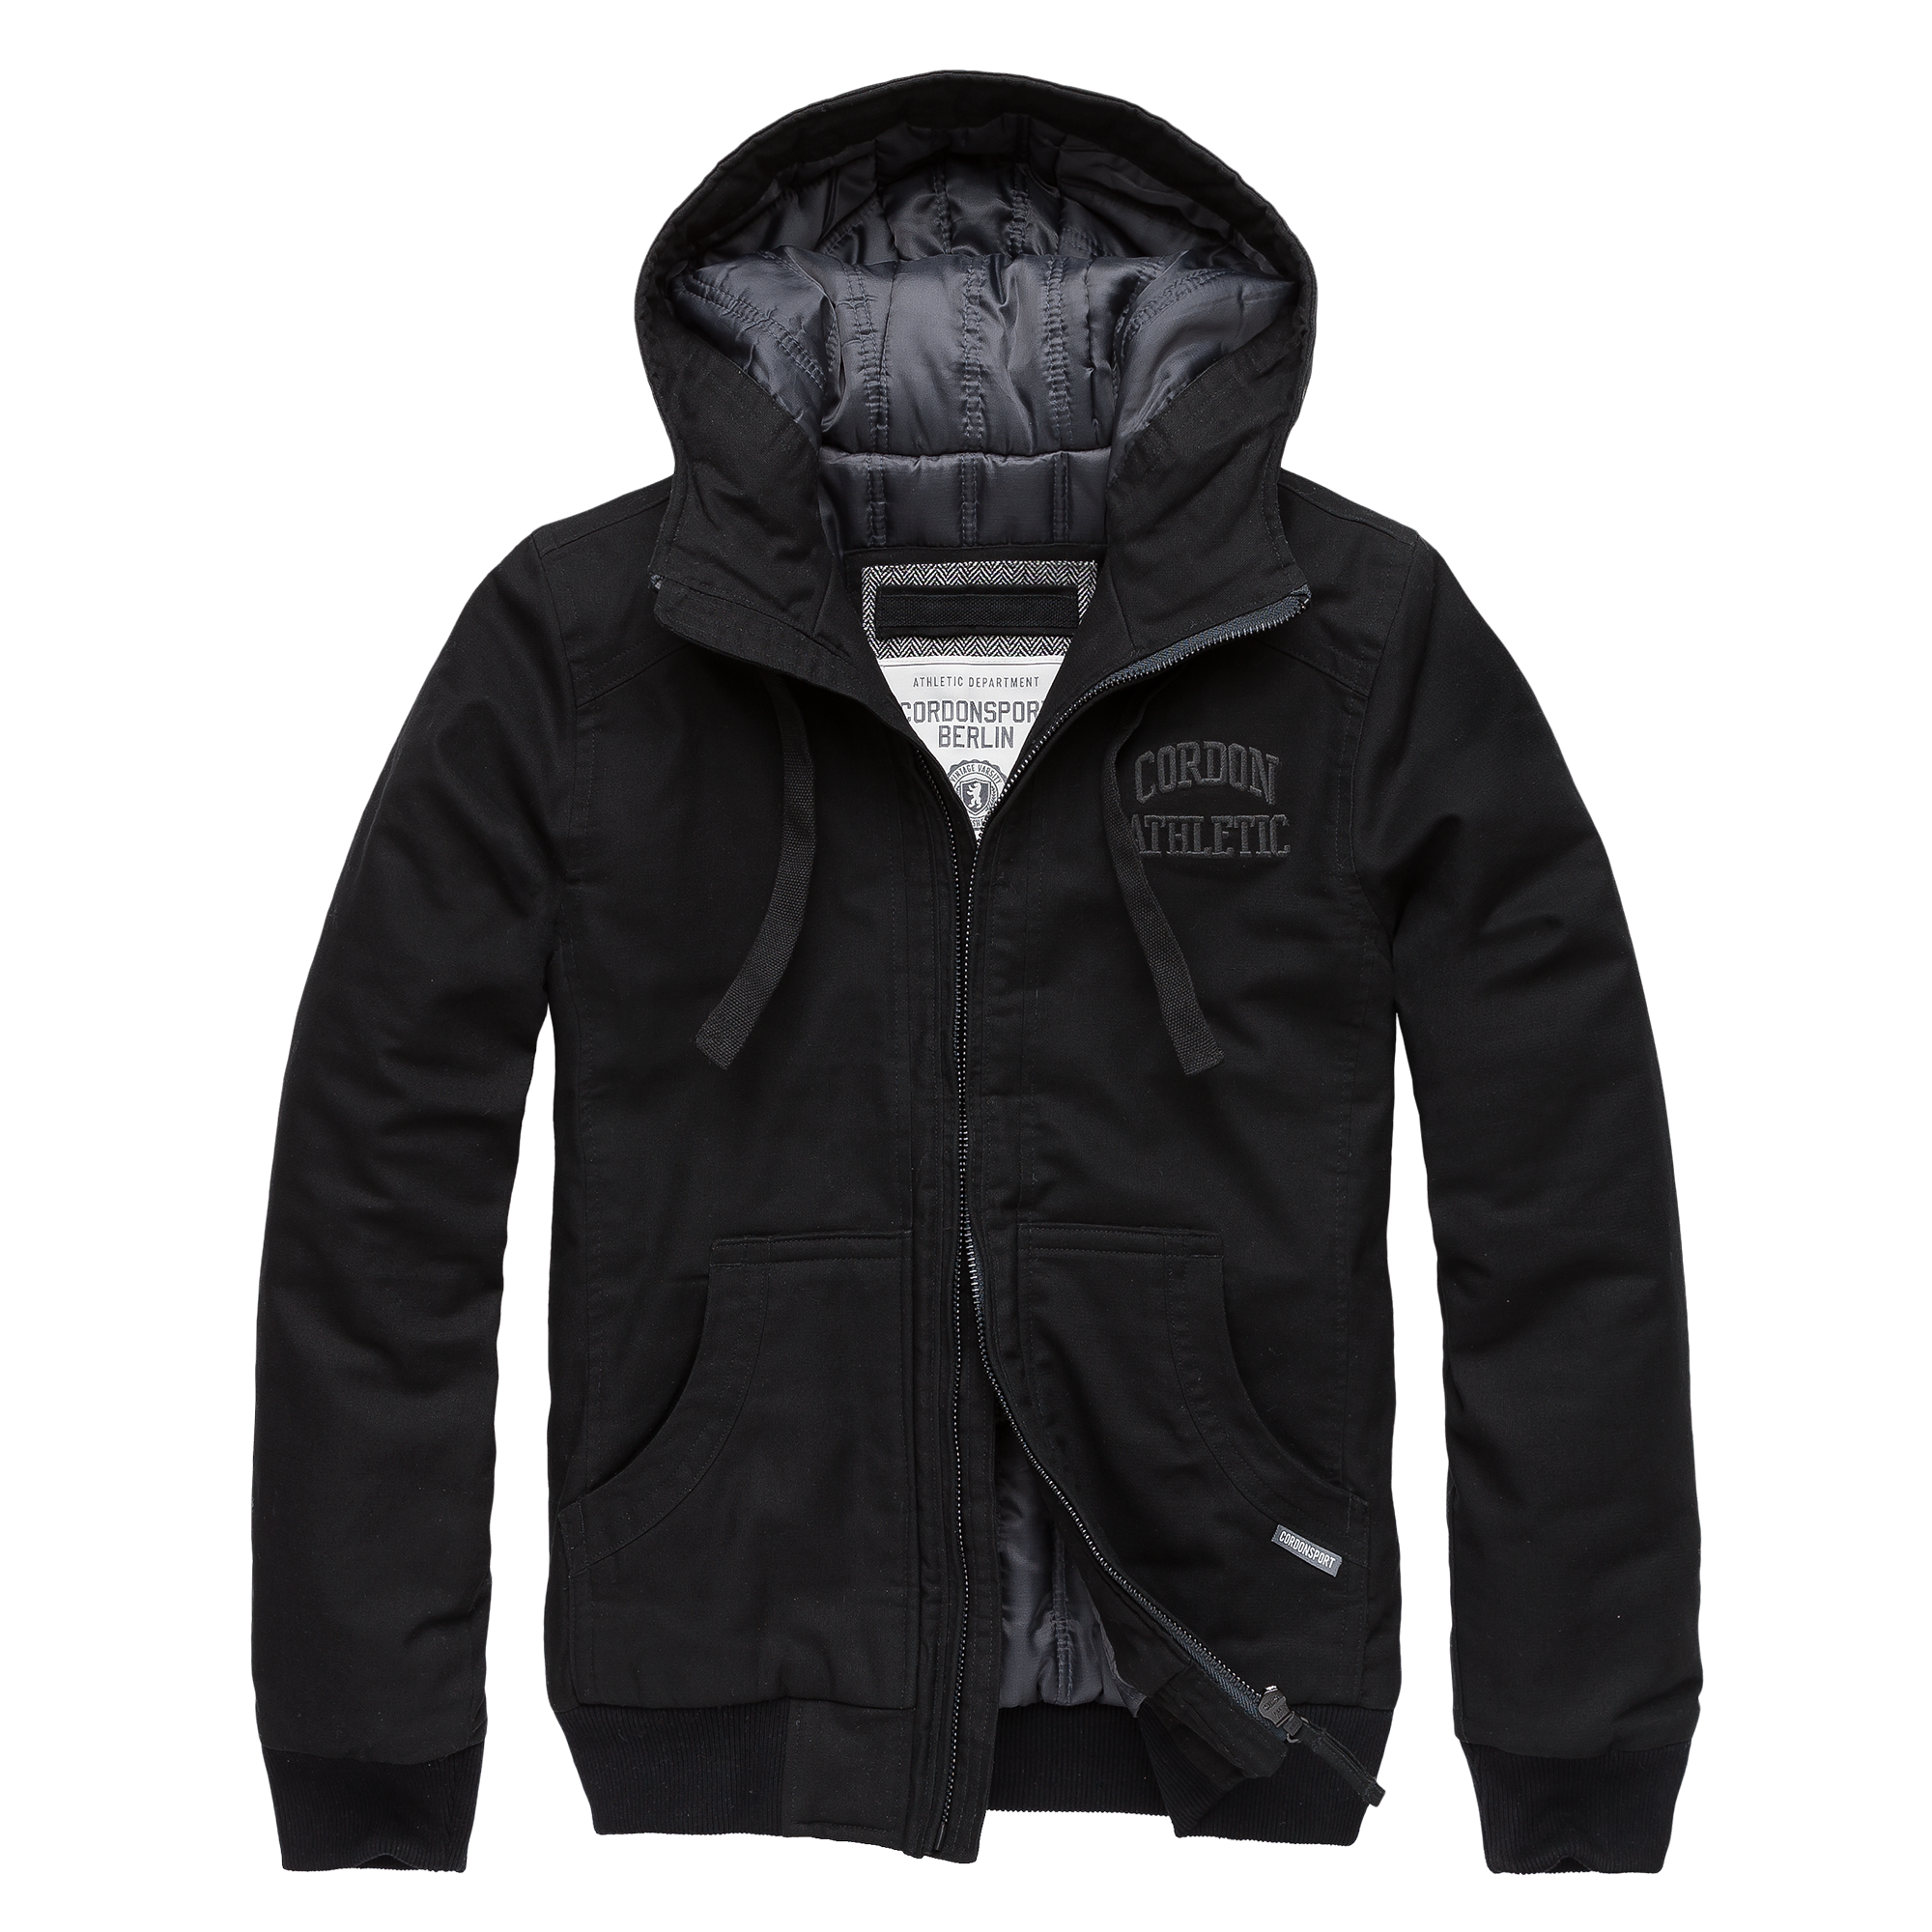 Cordon Active jacket